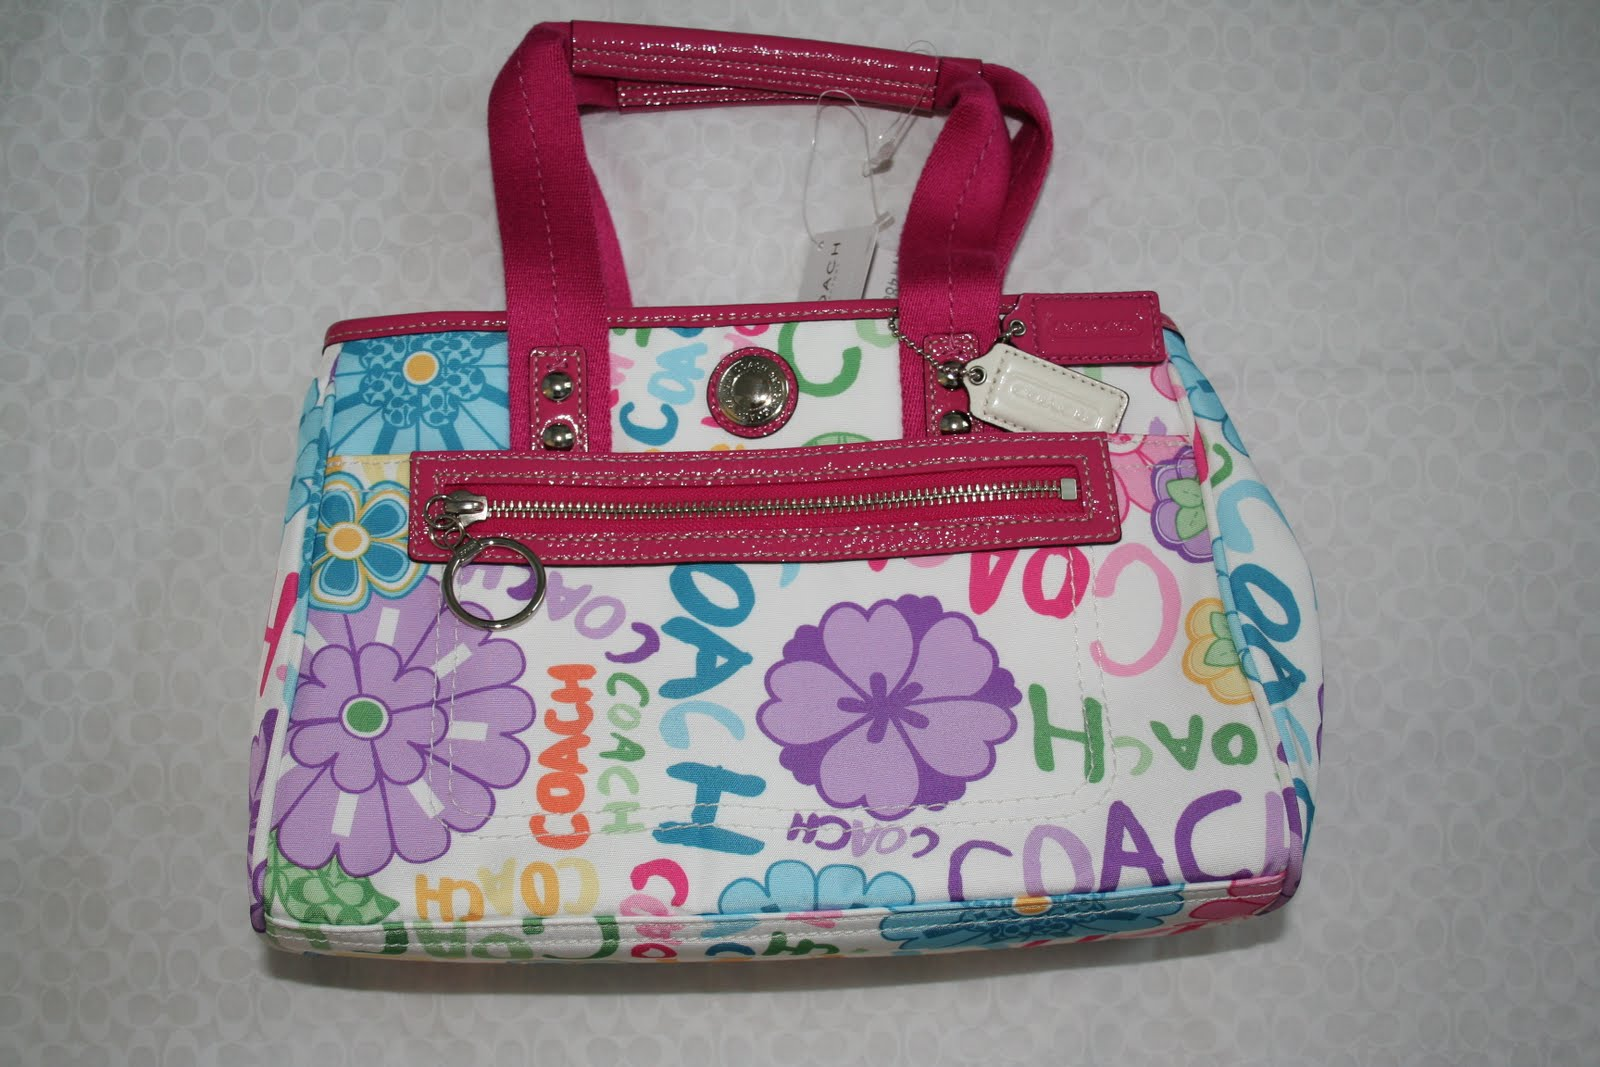 Luxury Bags For Sale Nwt Coach Daisy Flower Tote 14882